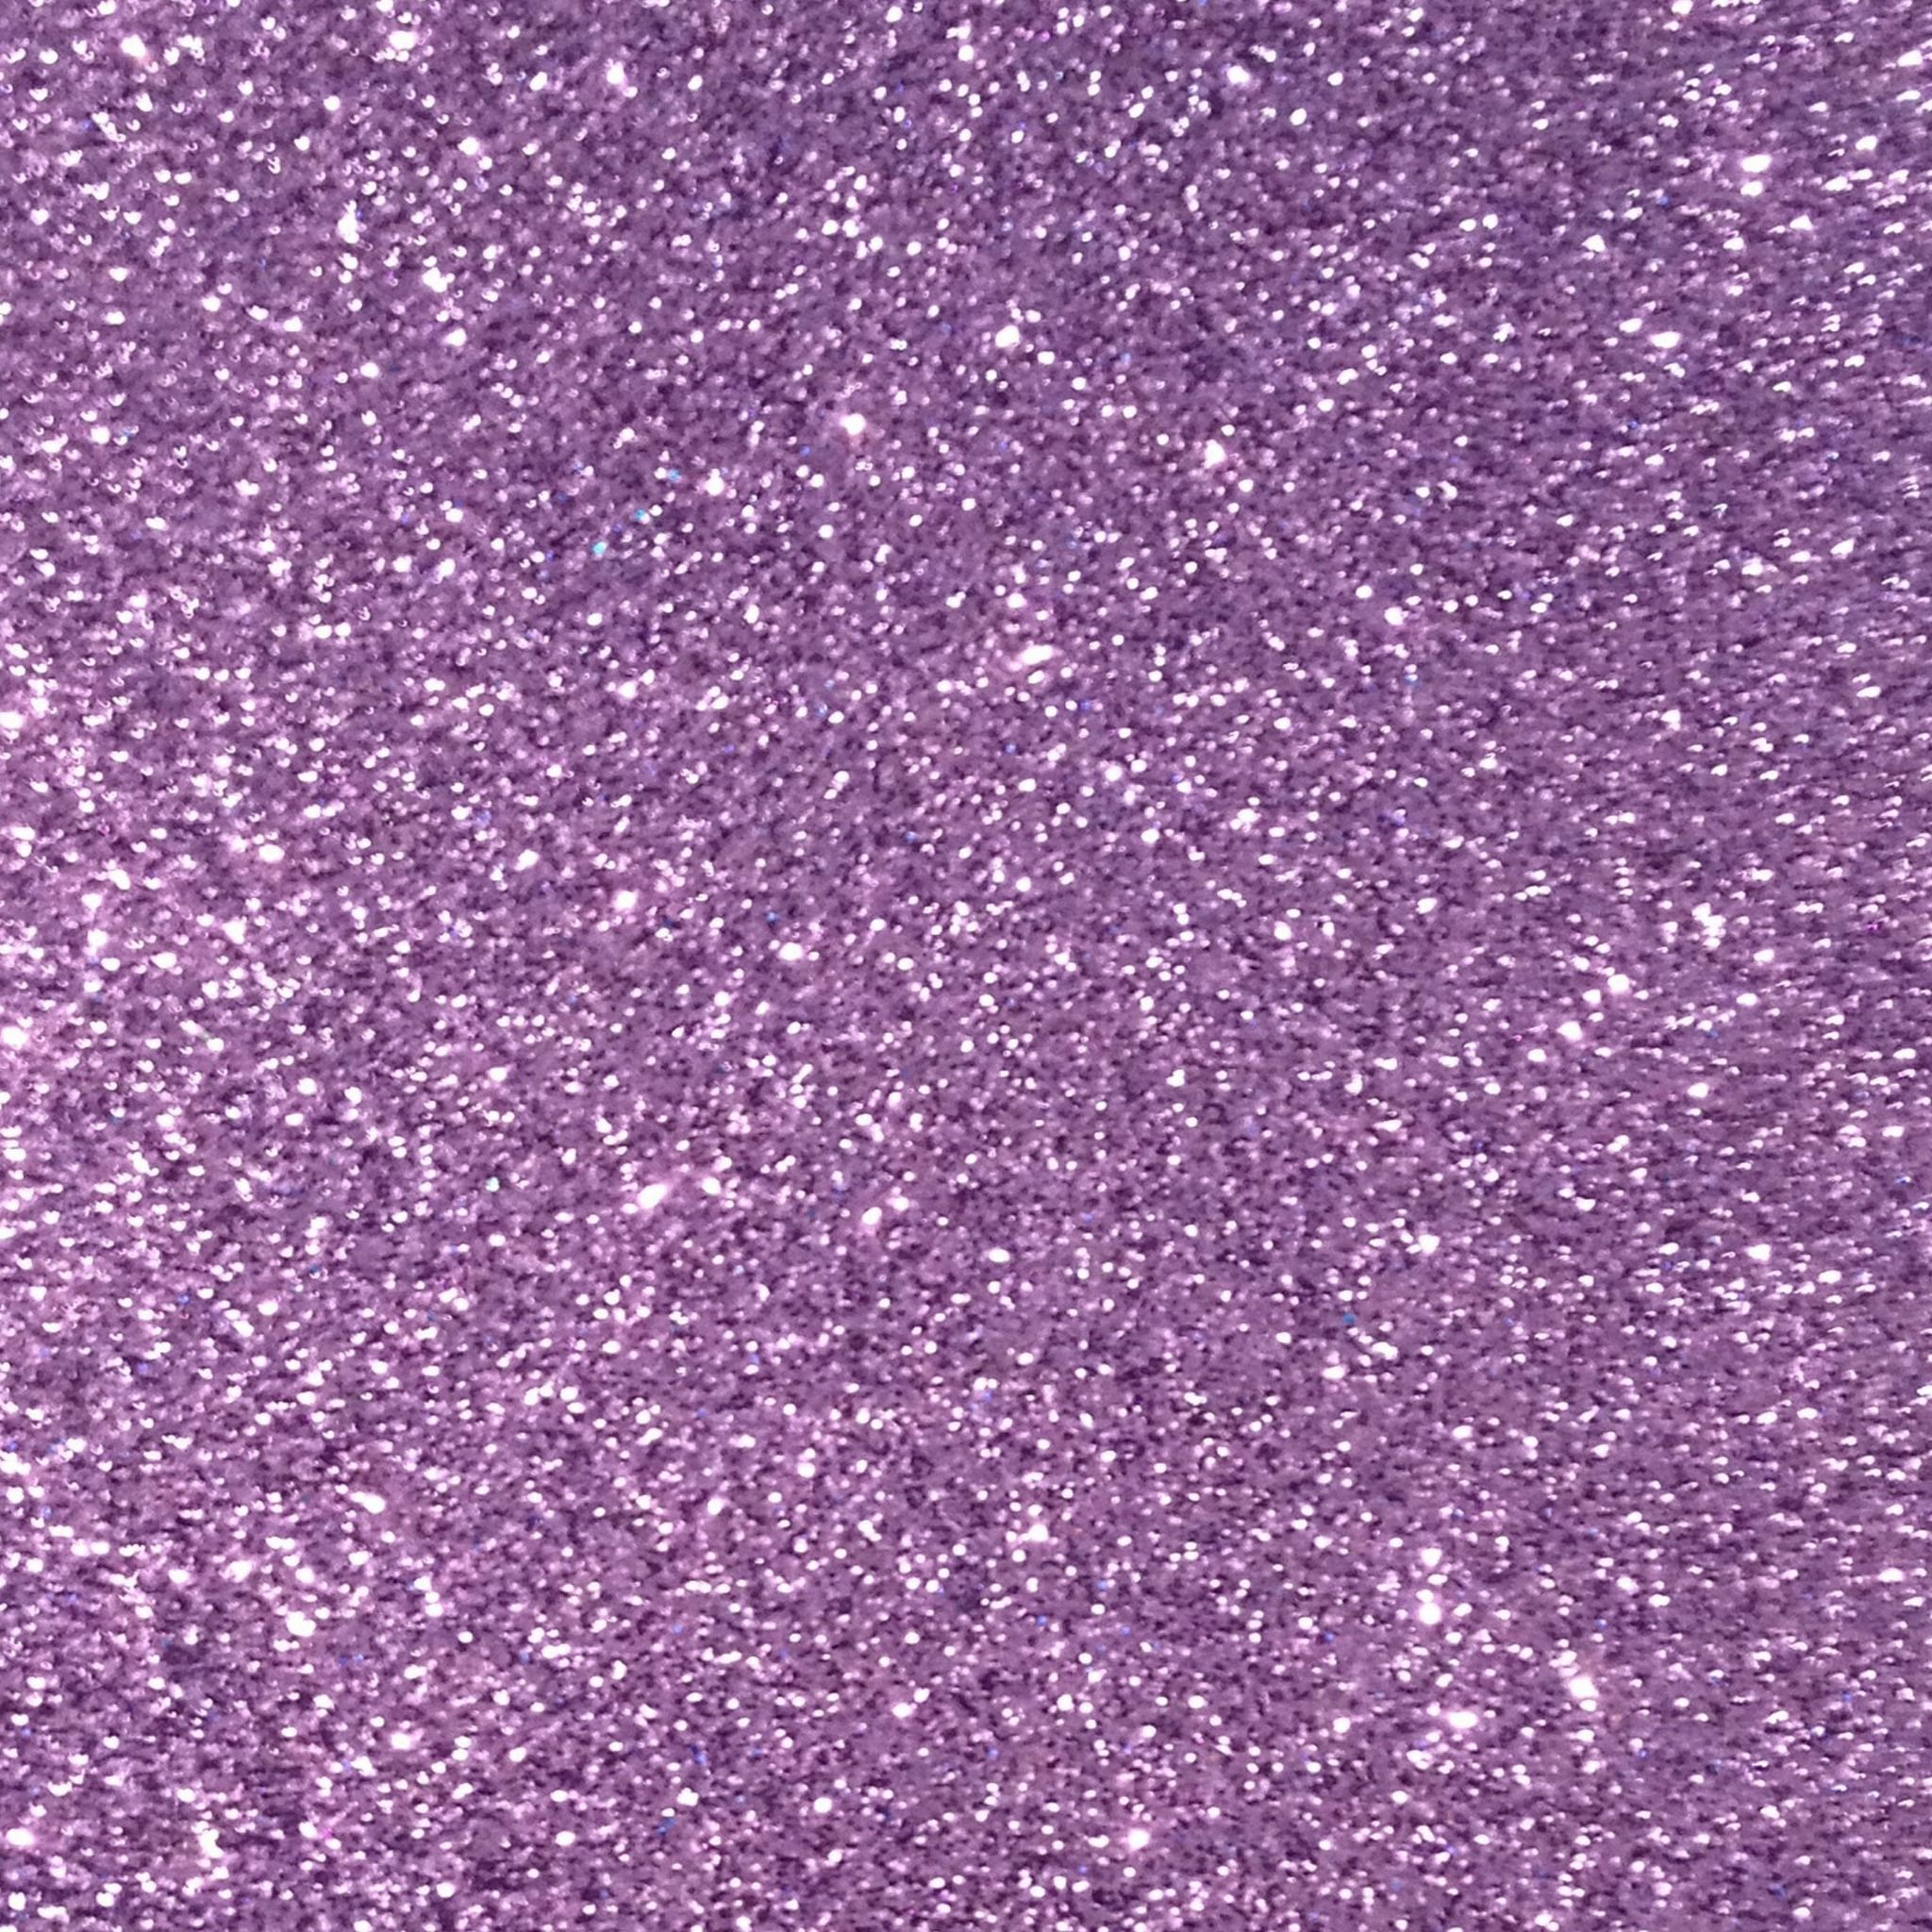 Violet Glitter. Tap Image For More Glitter Wallpapers For